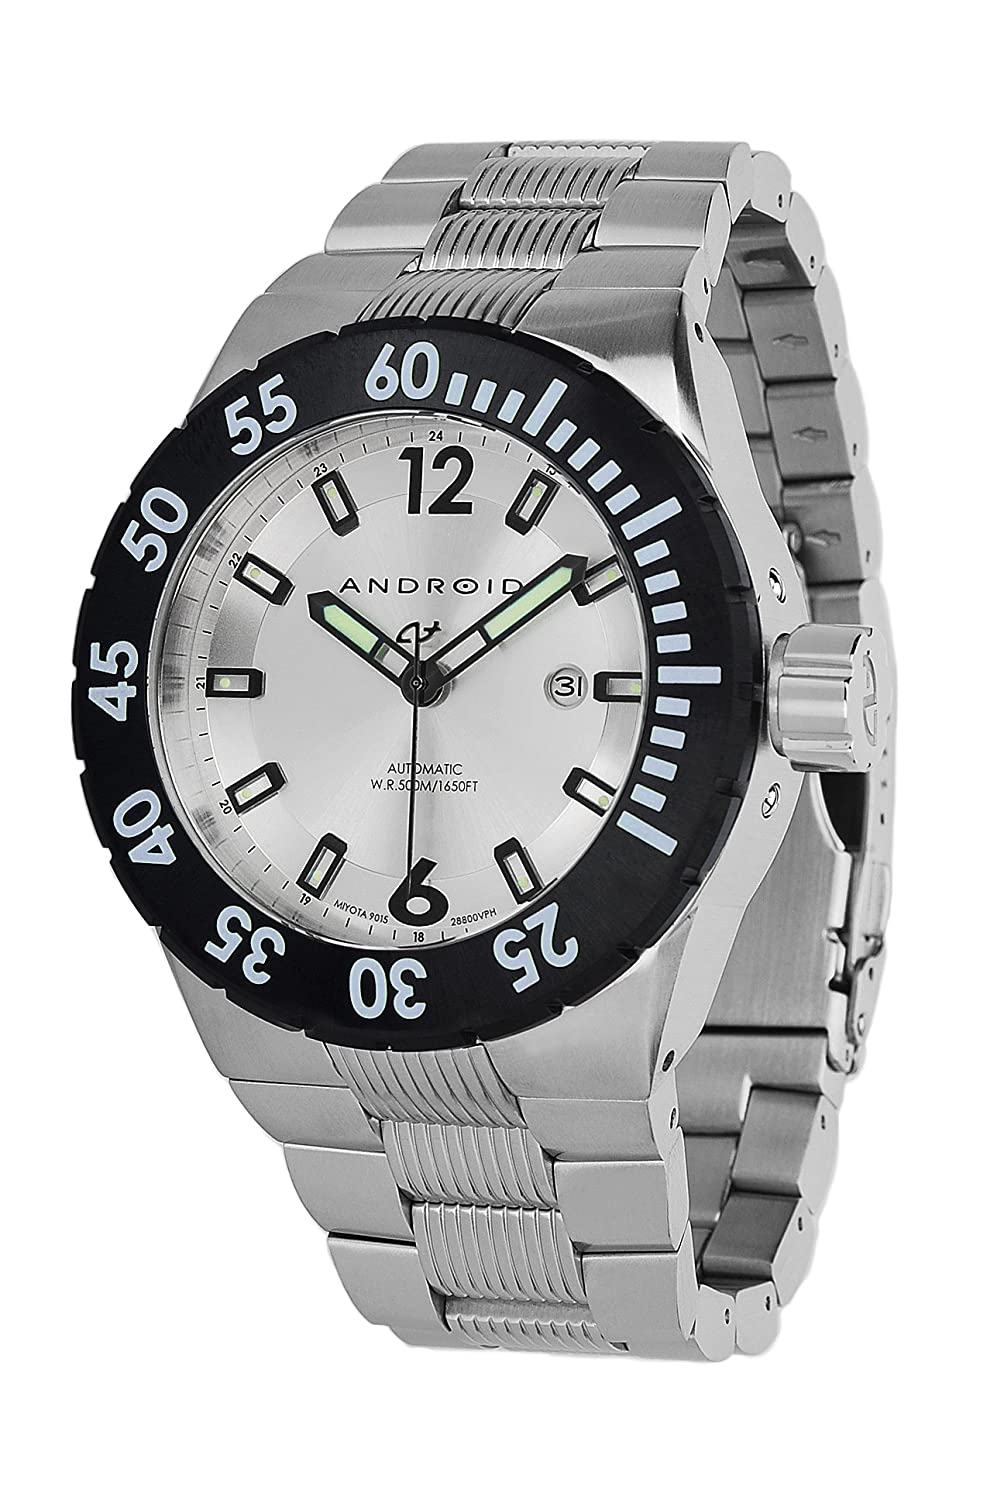 Android Dm Contender 9015 Automatic Stainless Steel Watch